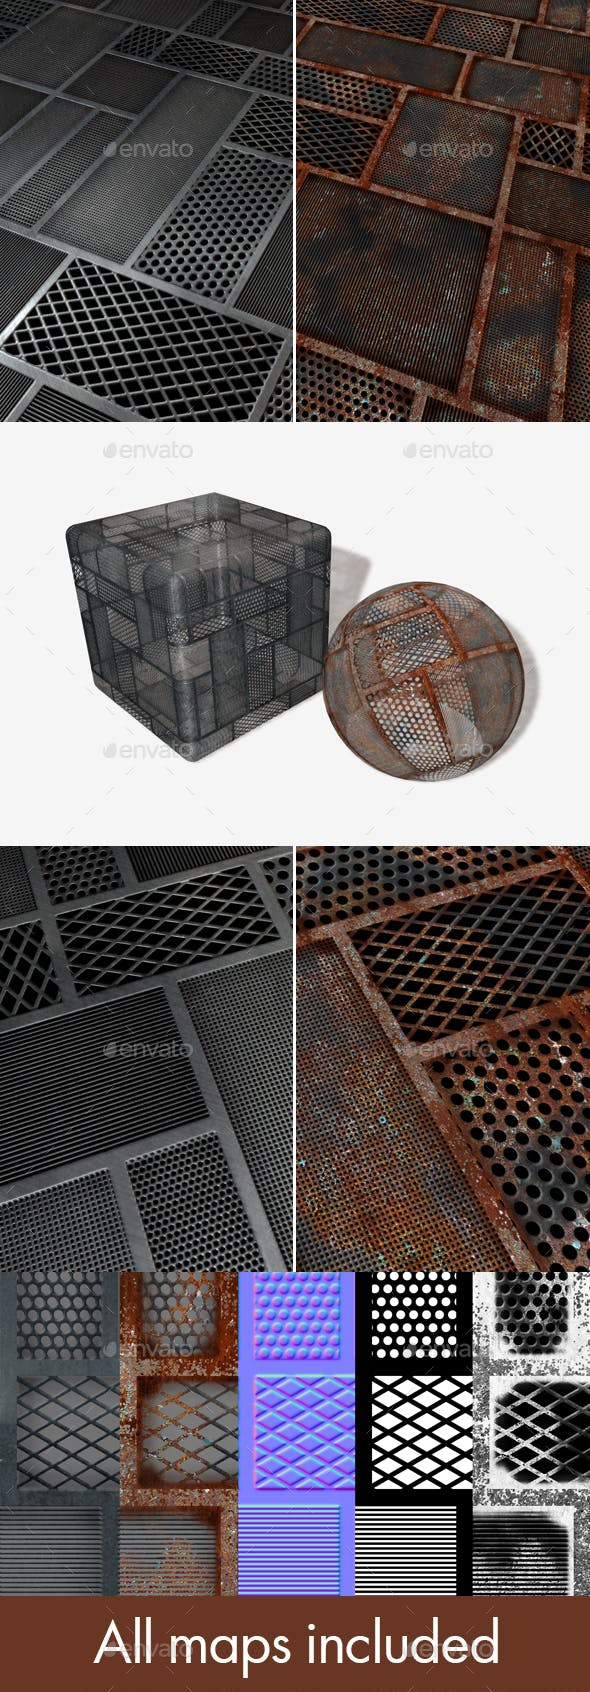 2 SciFi Mesh Seamless Textures - 3DOcean Item for Sale